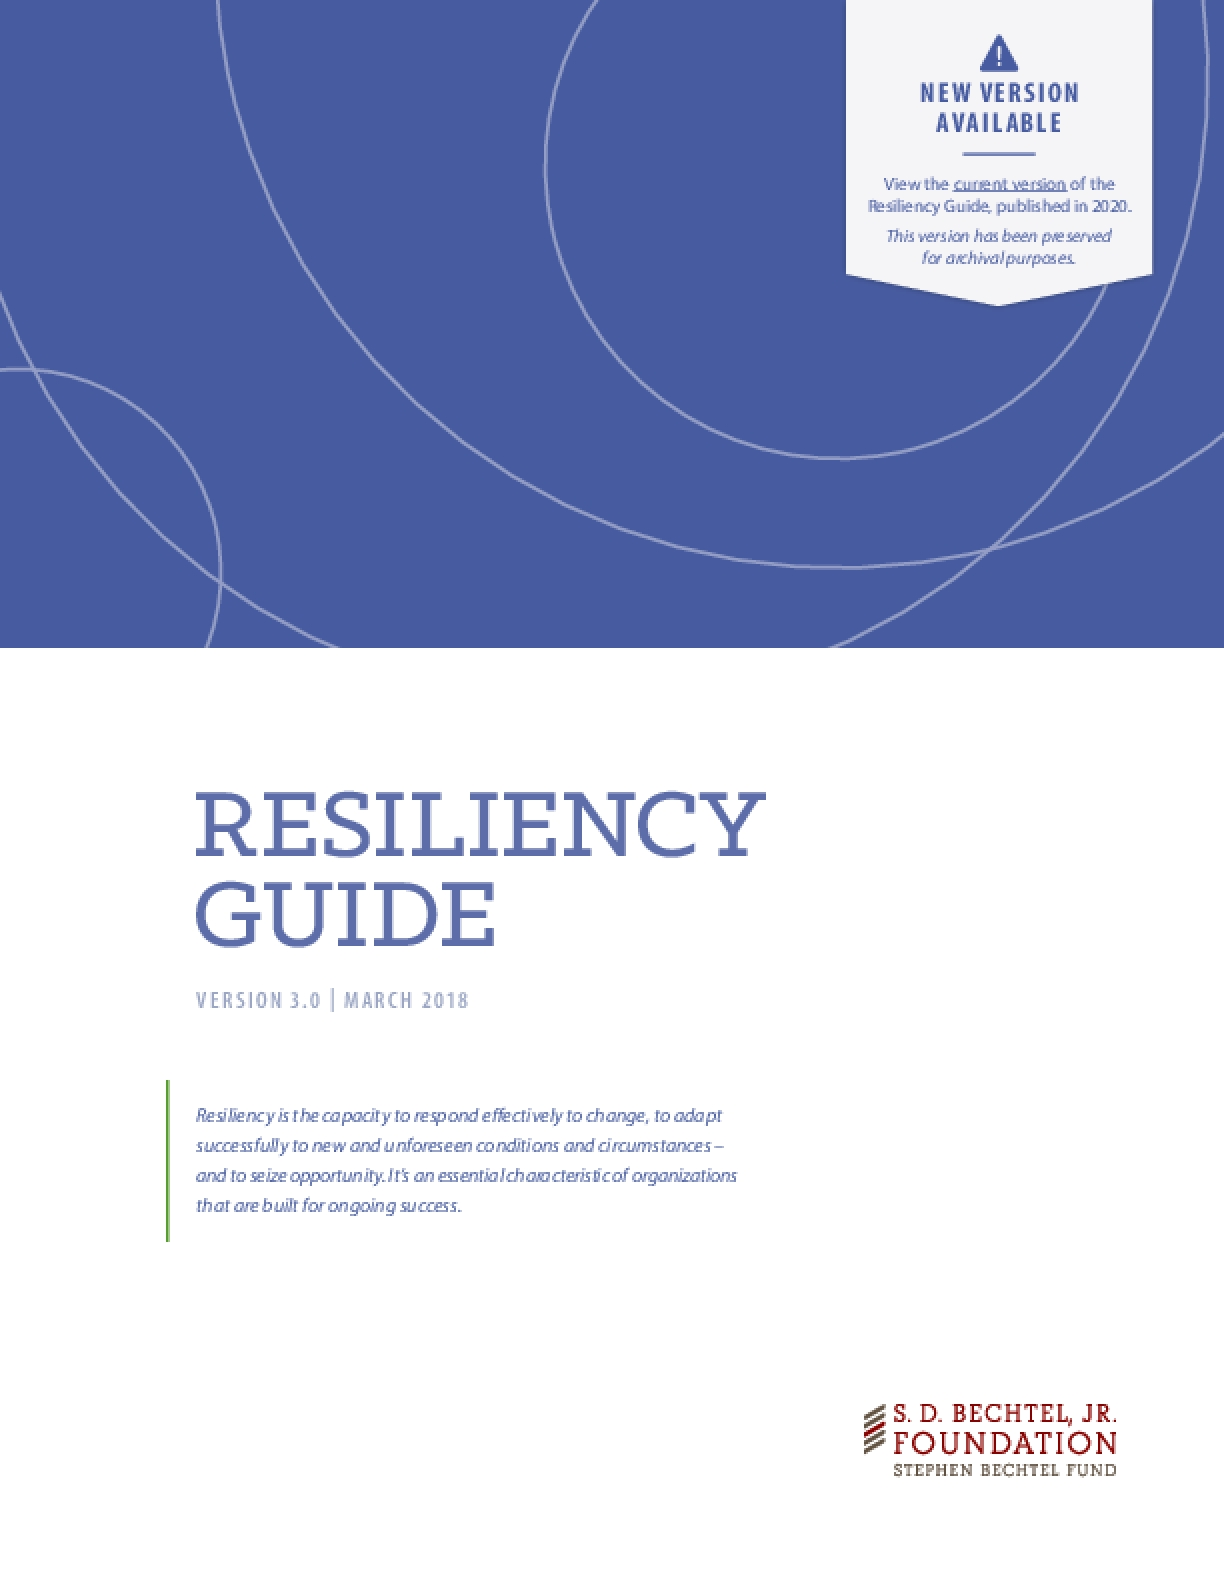 Resiliency Guide, Version 3.0